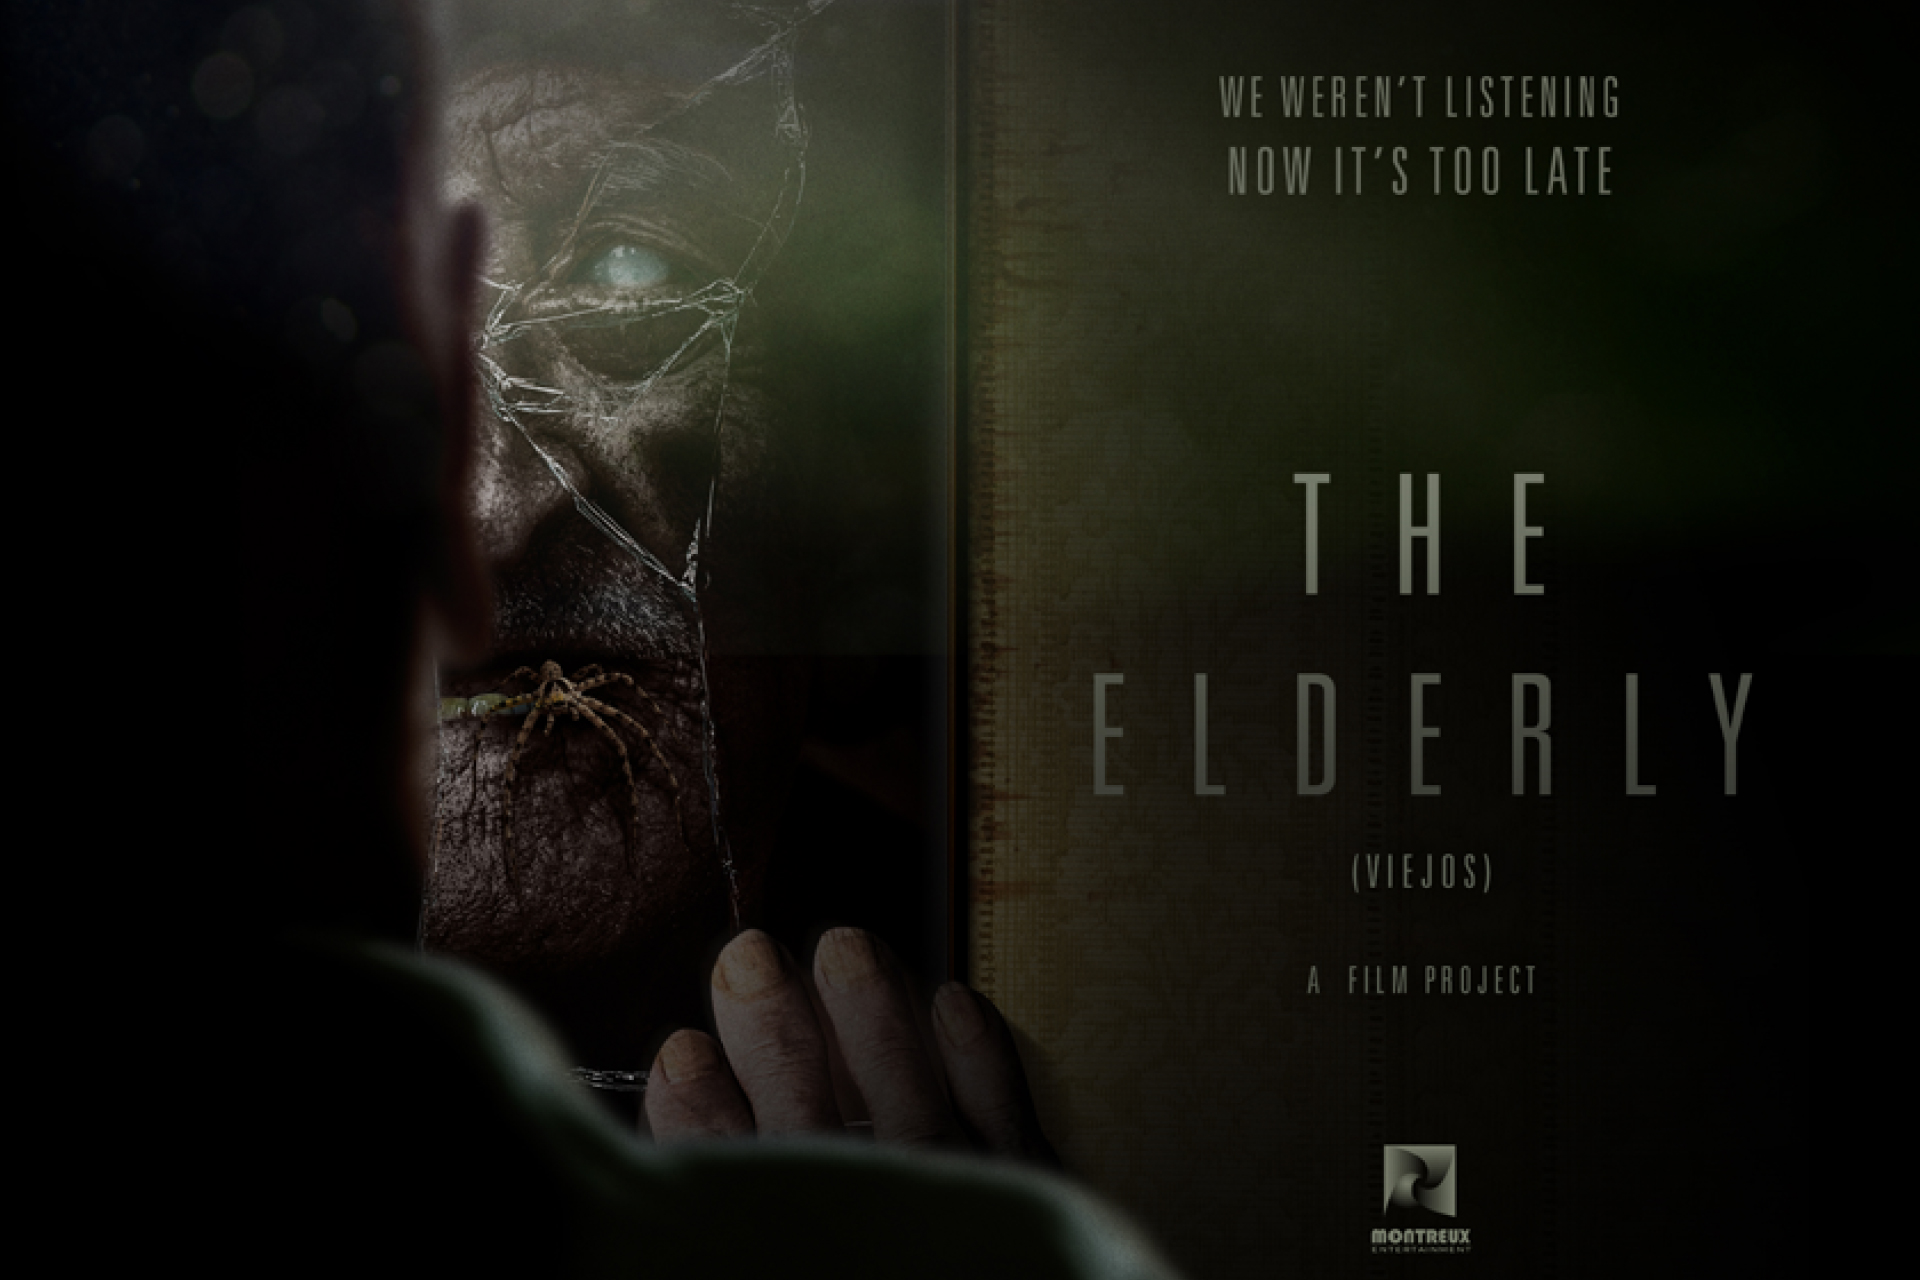 The Elderly, by Raul Cerezo a Montreux Entertainment Production at Macao Film Festival Reveals Plans in First Edition